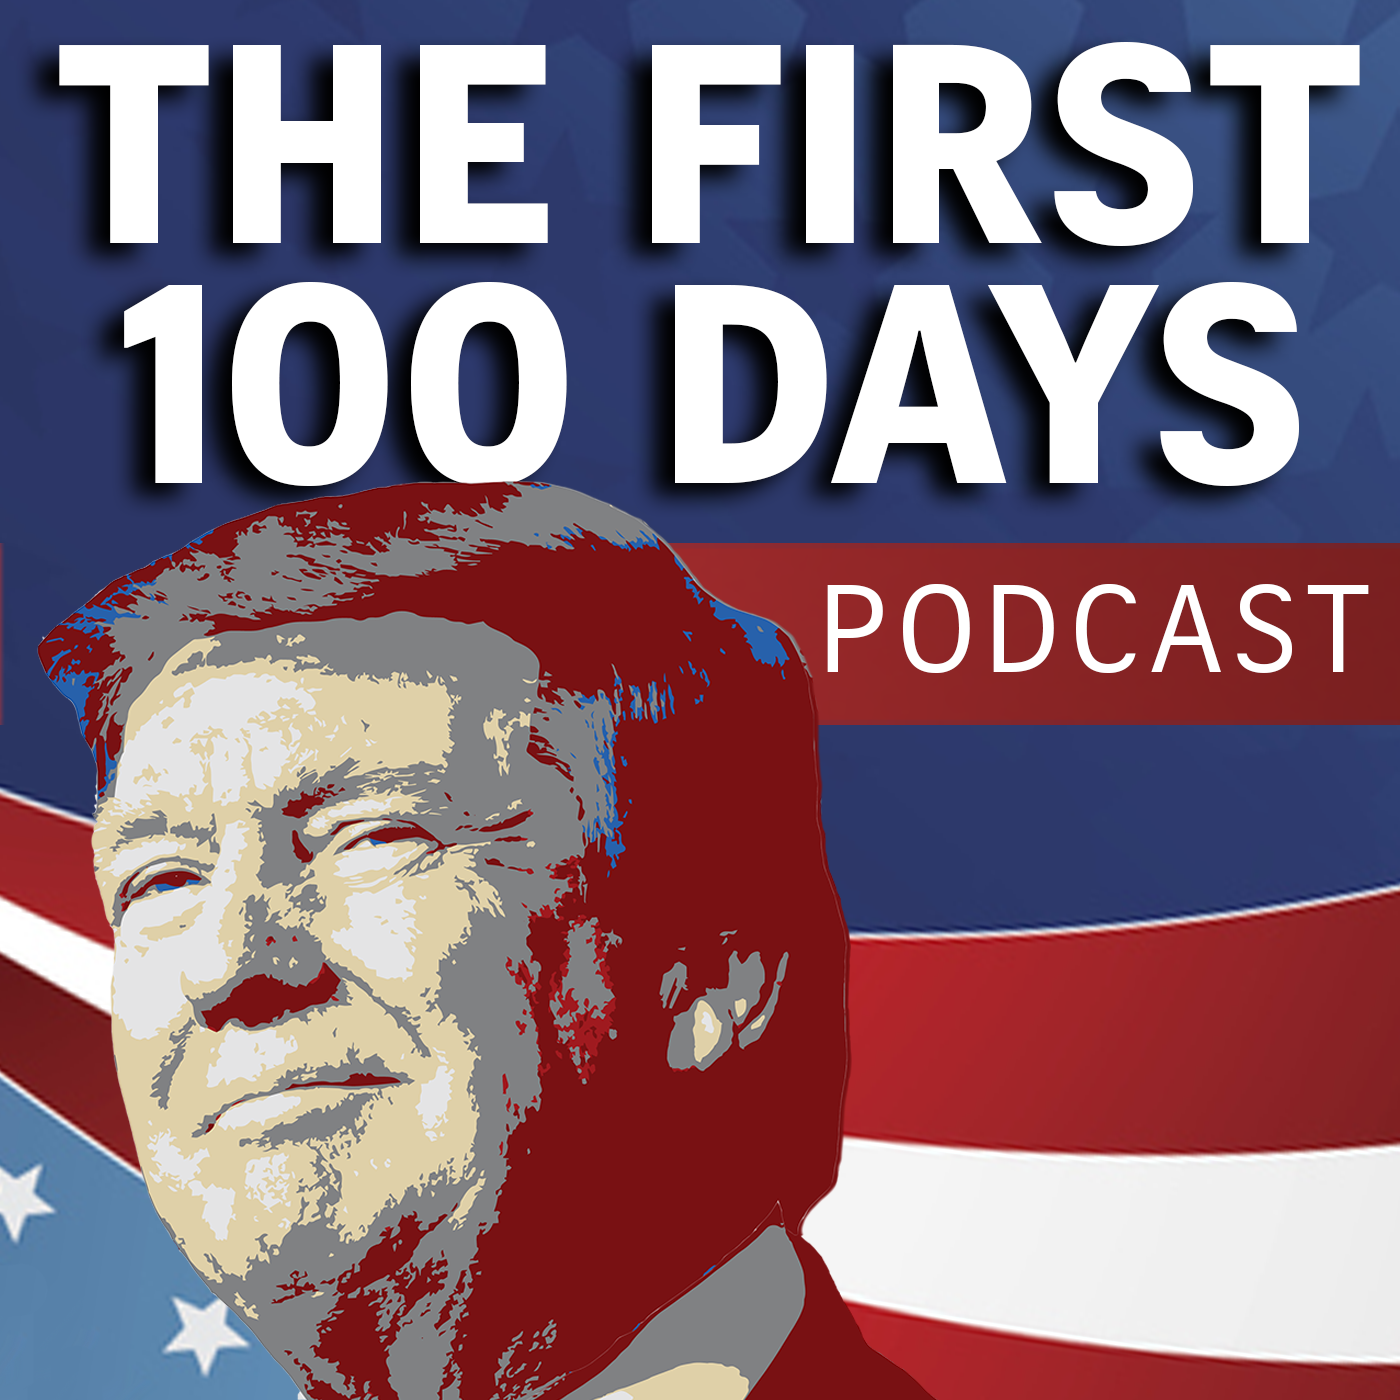 The First 100 Days Podcast